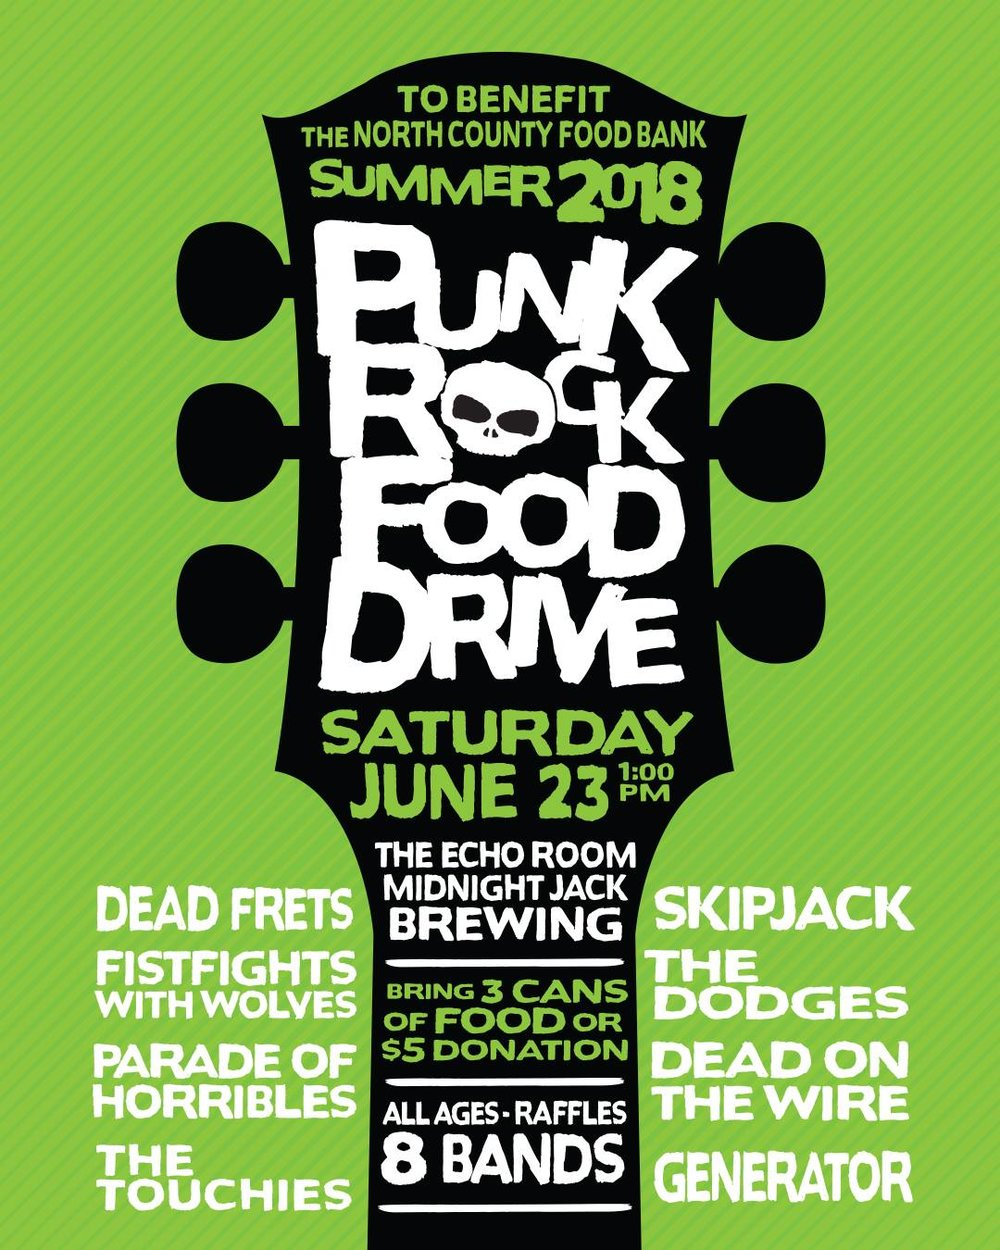 The Summer 2018 Punk Rock Food Drive - DATE: 6/23/2018 VENUE: Midnight Jack Brewing Co. Oceanside, CARESULTS:2,086 pounds of food$4,488.00.24,178 meals.LINEUP:Dead FretsFistfights With WolvesParade of HorriblesThe TouchiesSKIPJACKThe DodgesDead on the WireGeneratorALL PHOTOS BY JOEL GELIN